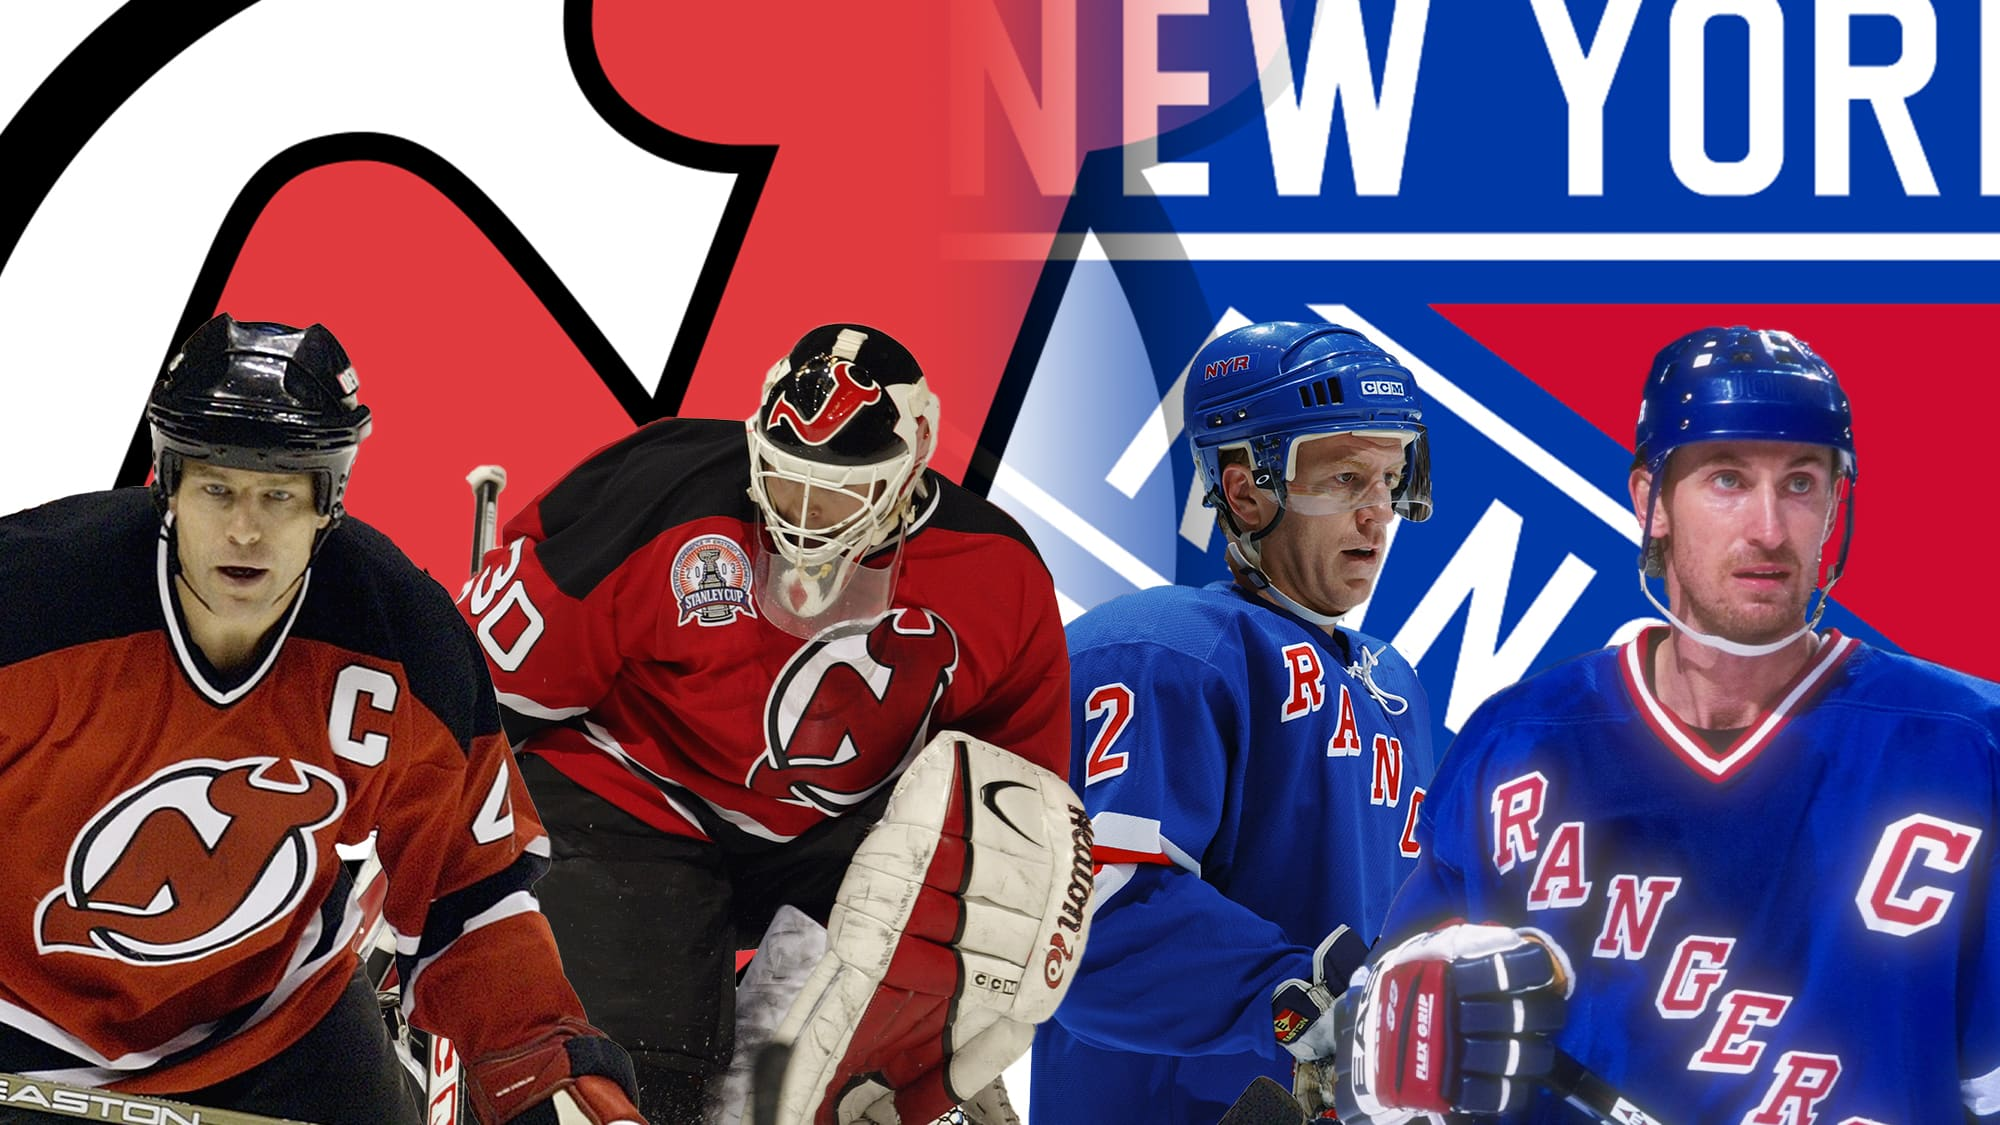 55a53be26 Remembering the New Jersey Devils  unbeaten streak vs. the New York Rangers